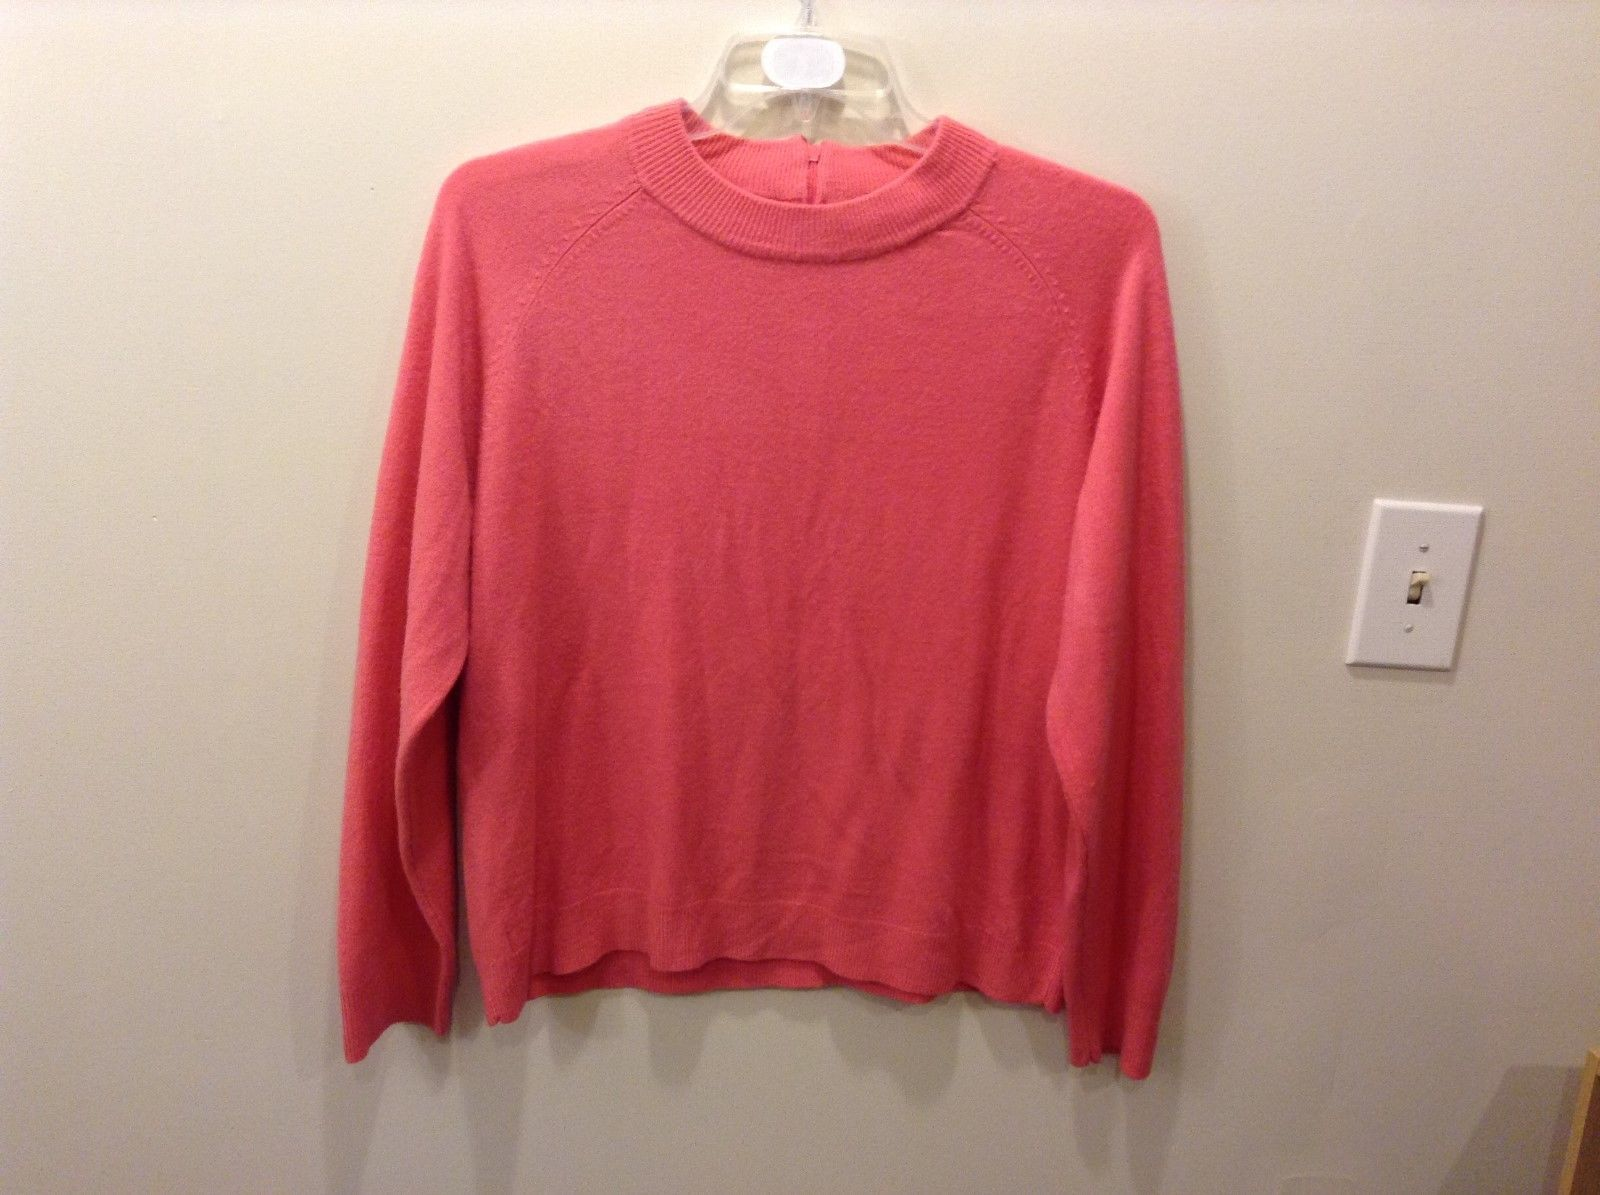 Pretty White Stag Big Plain Pink Long Sleeve Sweater